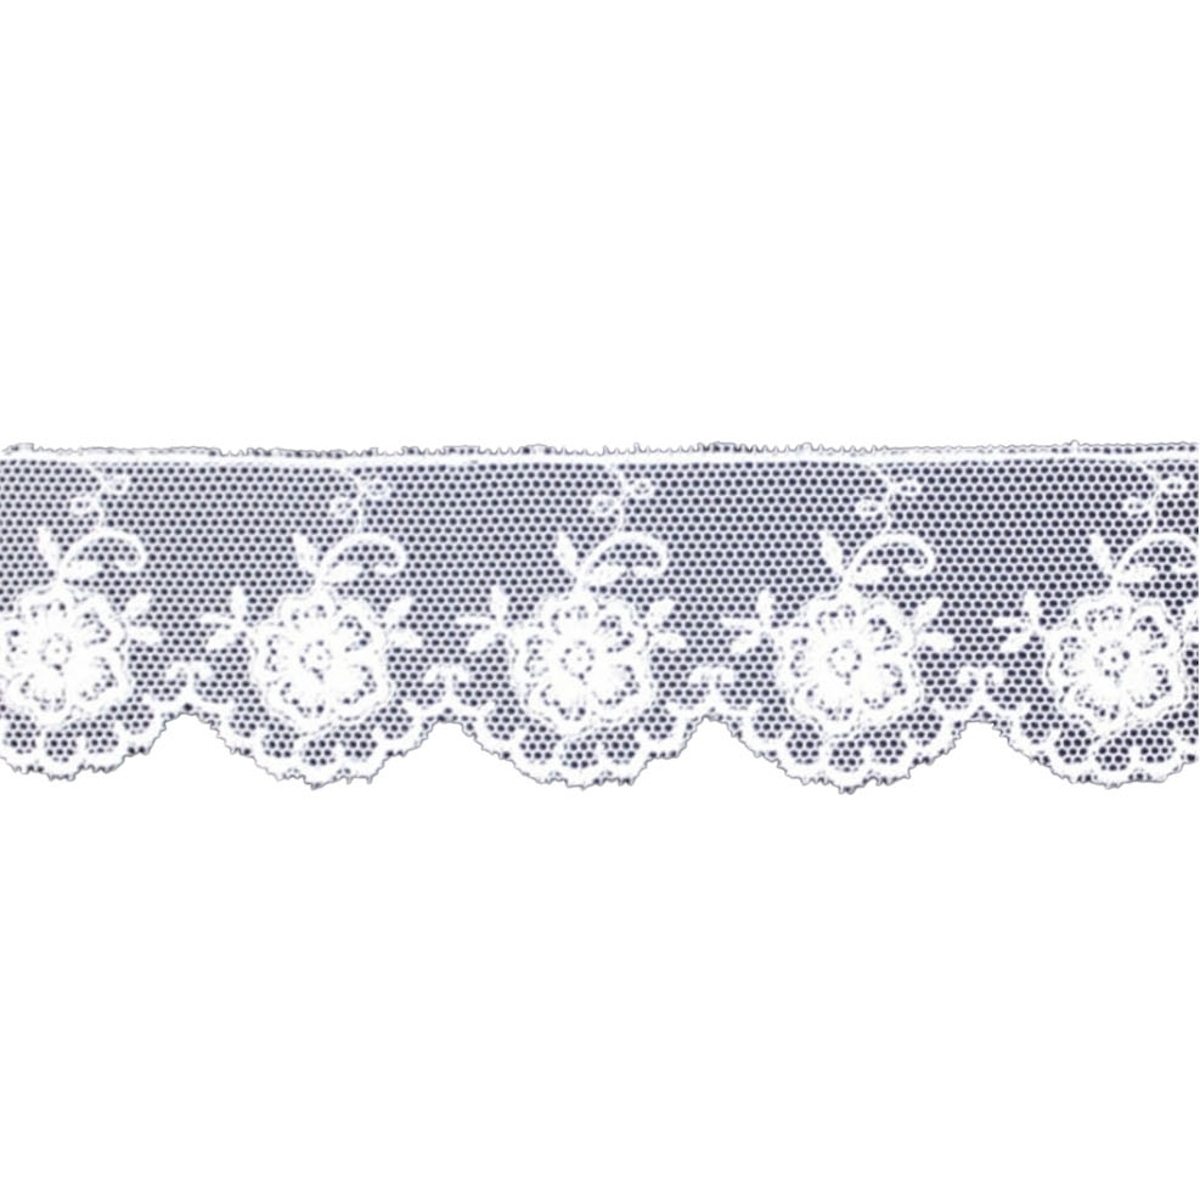 tulle brode, white | 4108B-001 |